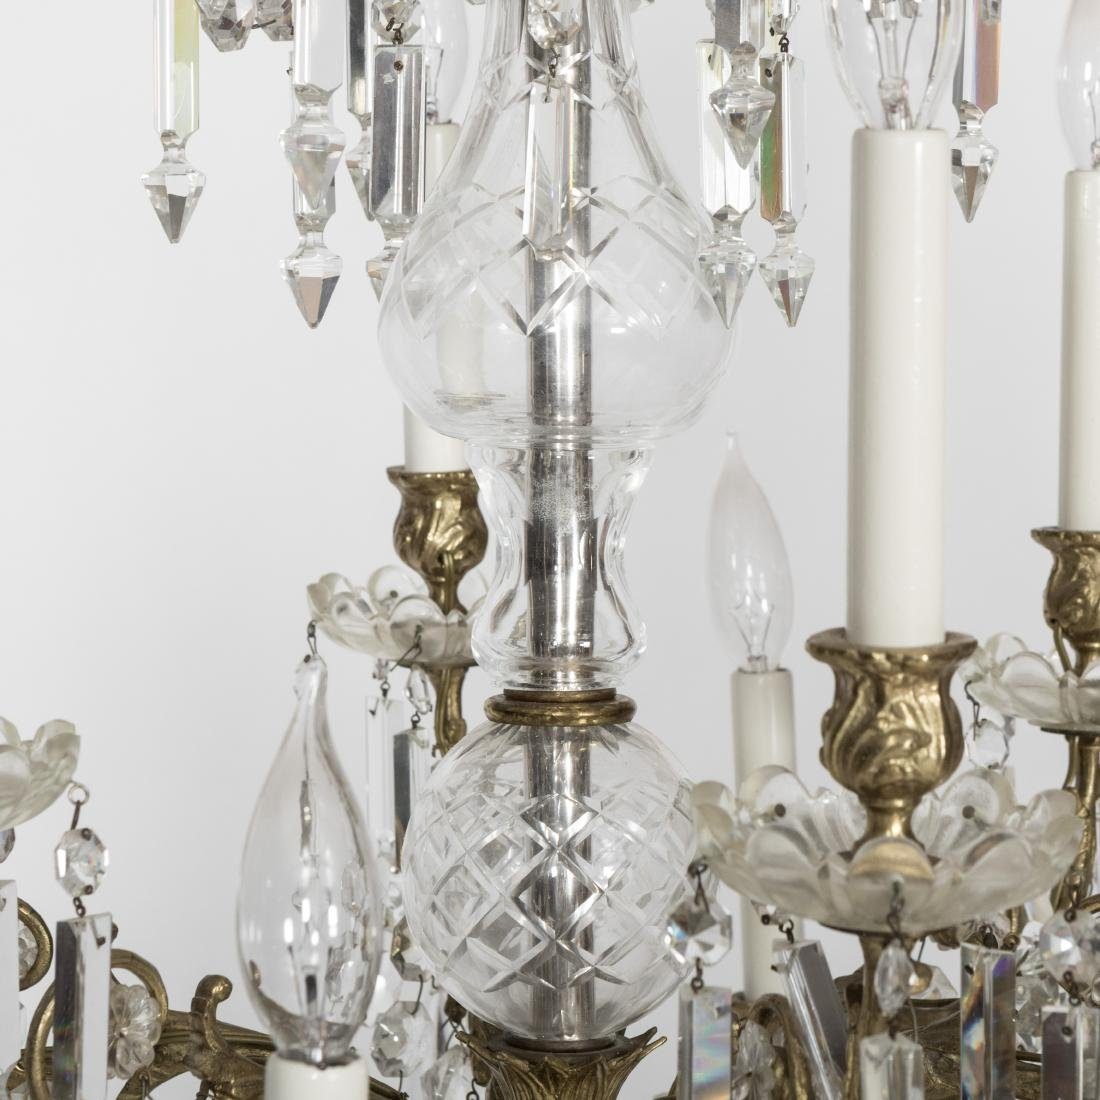 Twelve Arm French Style Chandelier - 2